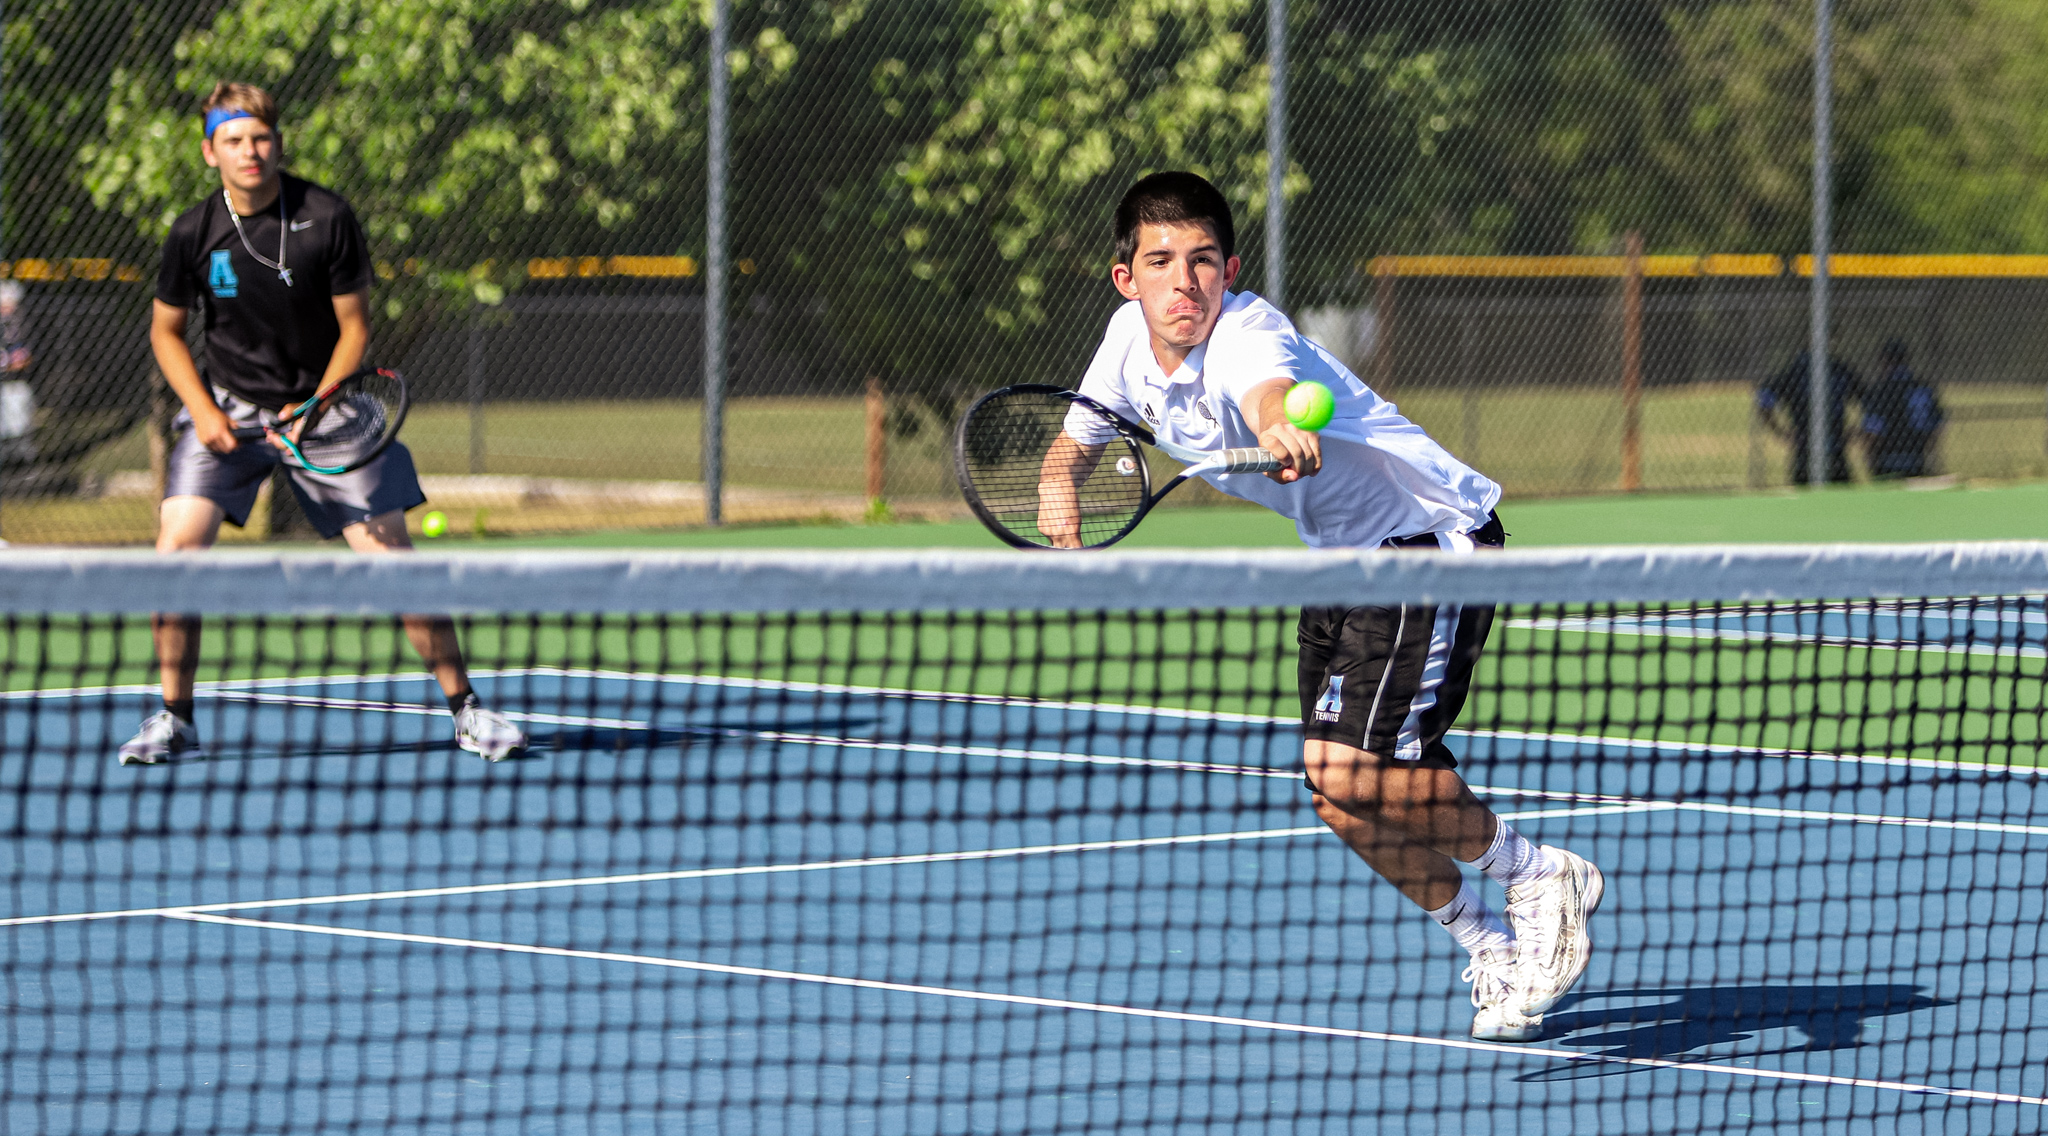 Boys Tennis: C.B. Aycock Faces Off Against D.H. Conley (PHOTO GALLERY)